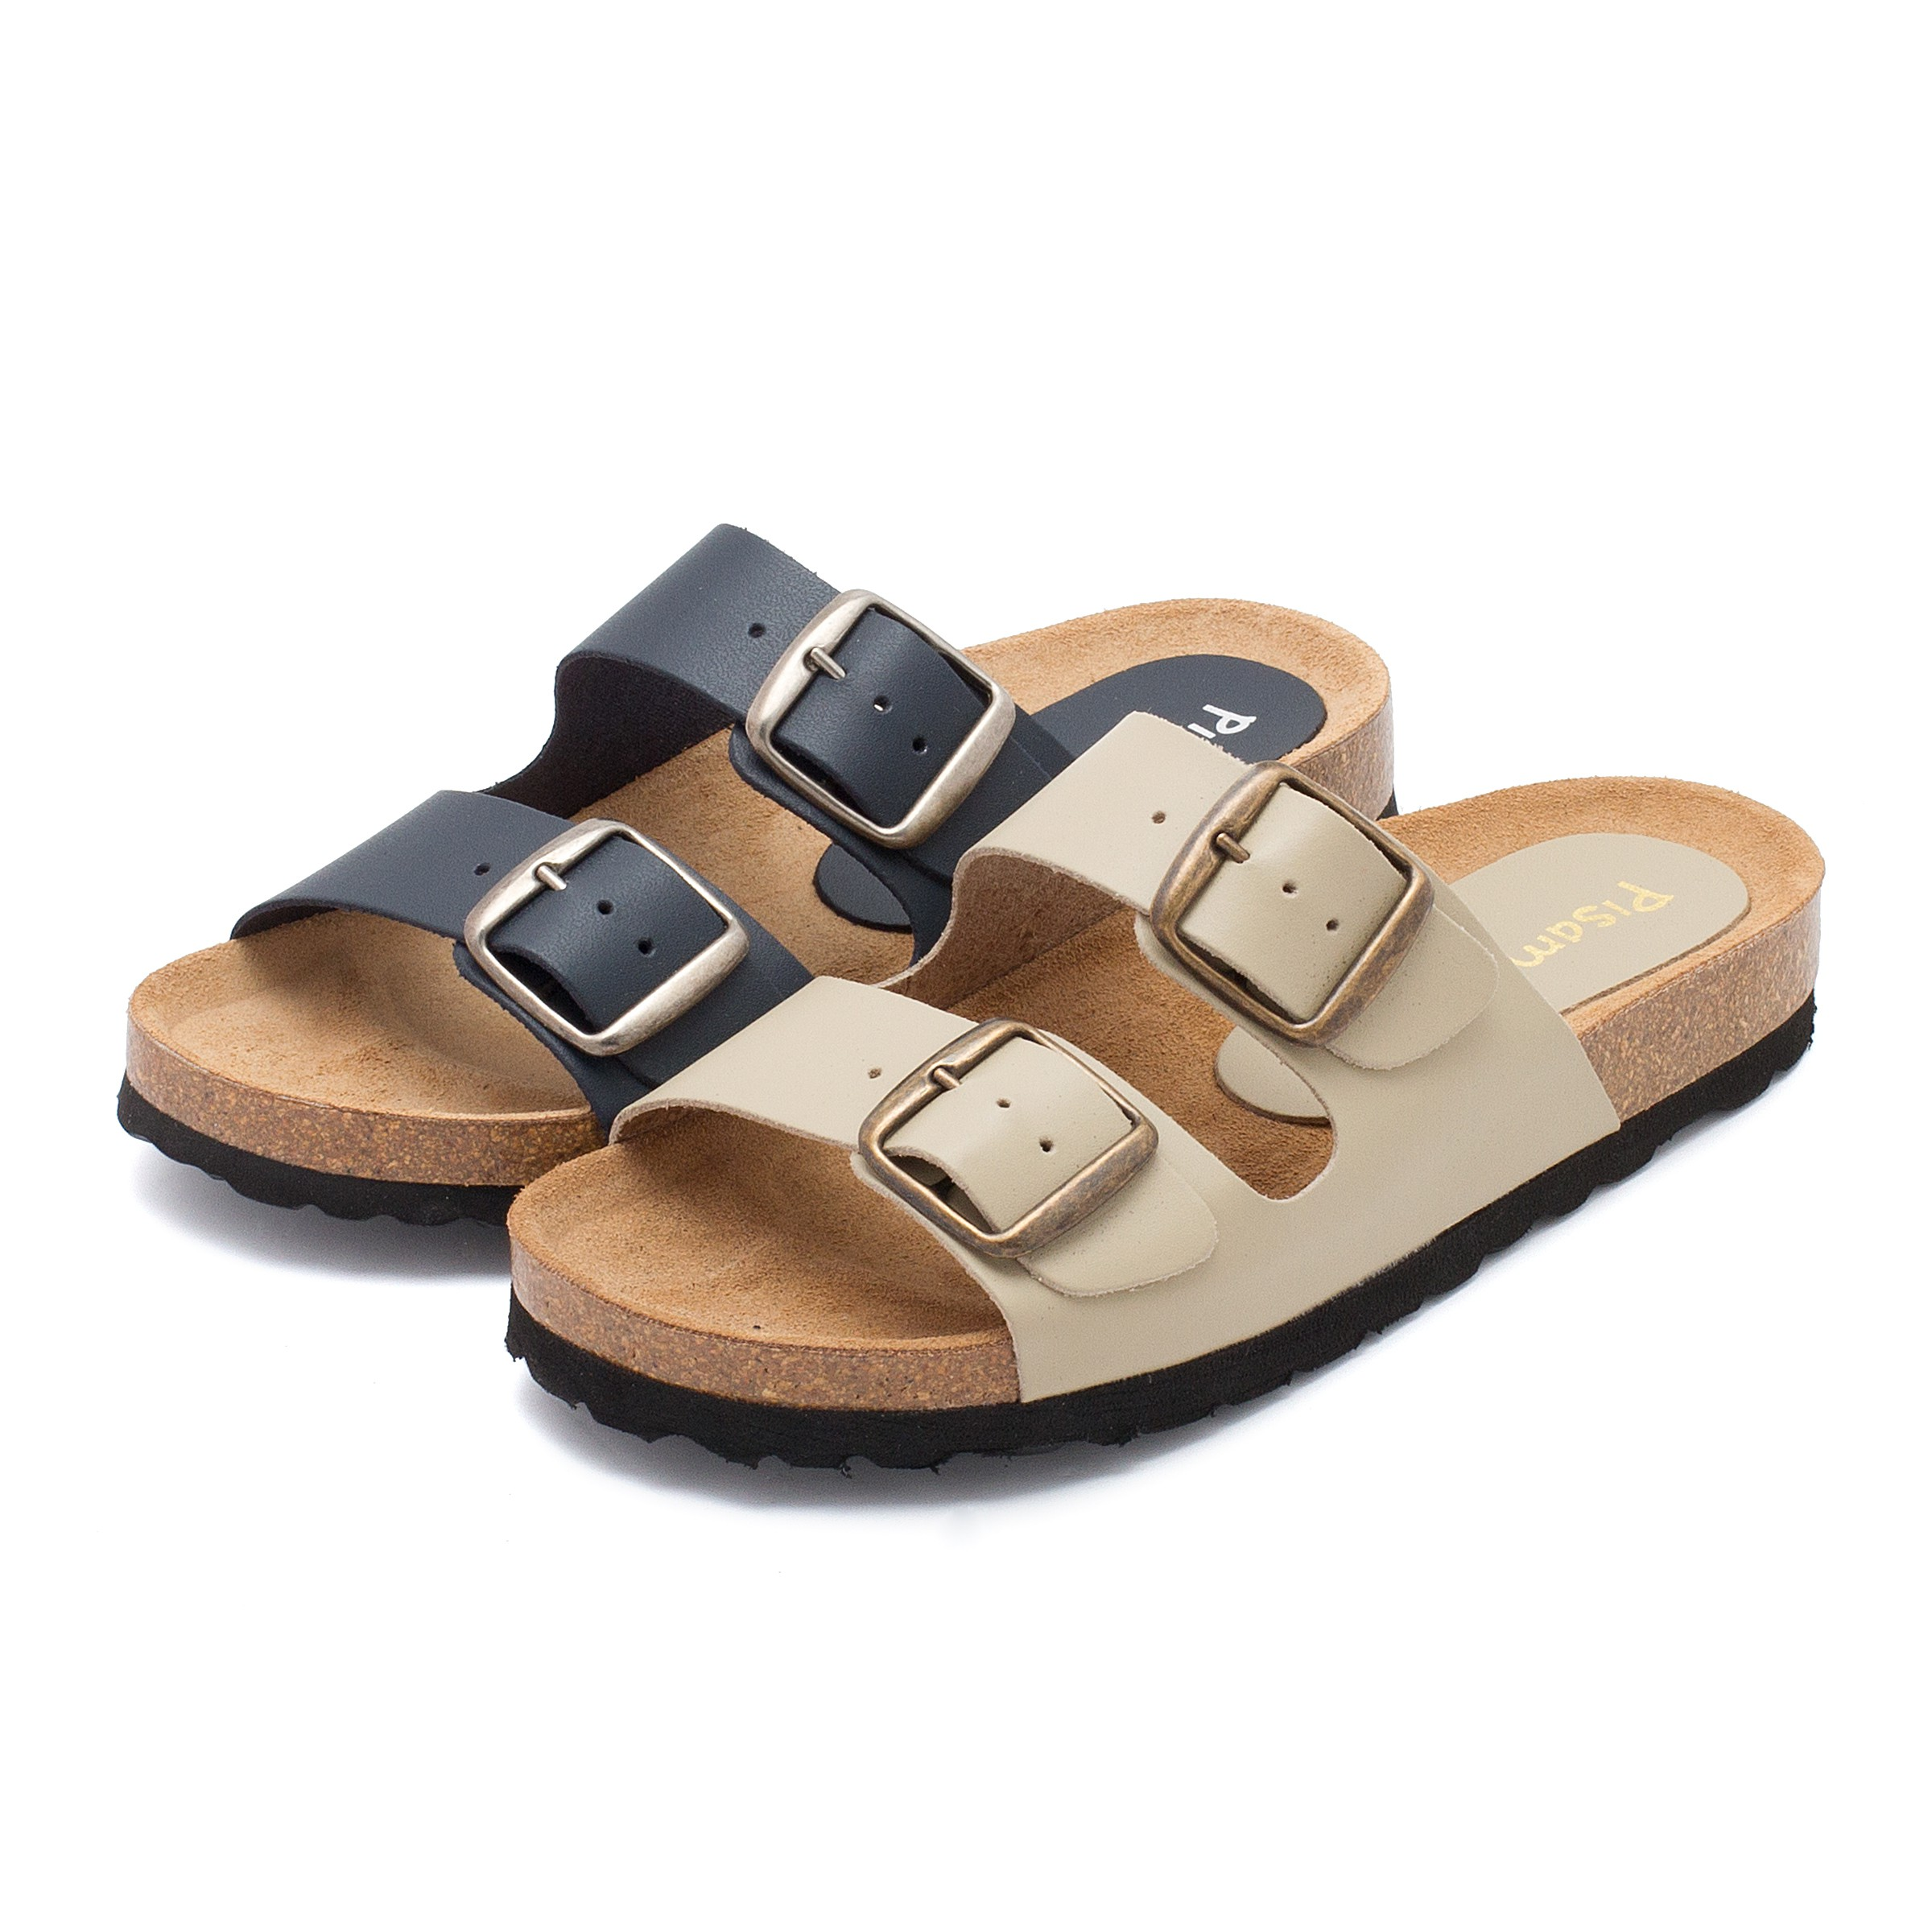 Boys' Bio Sandals with Buckles